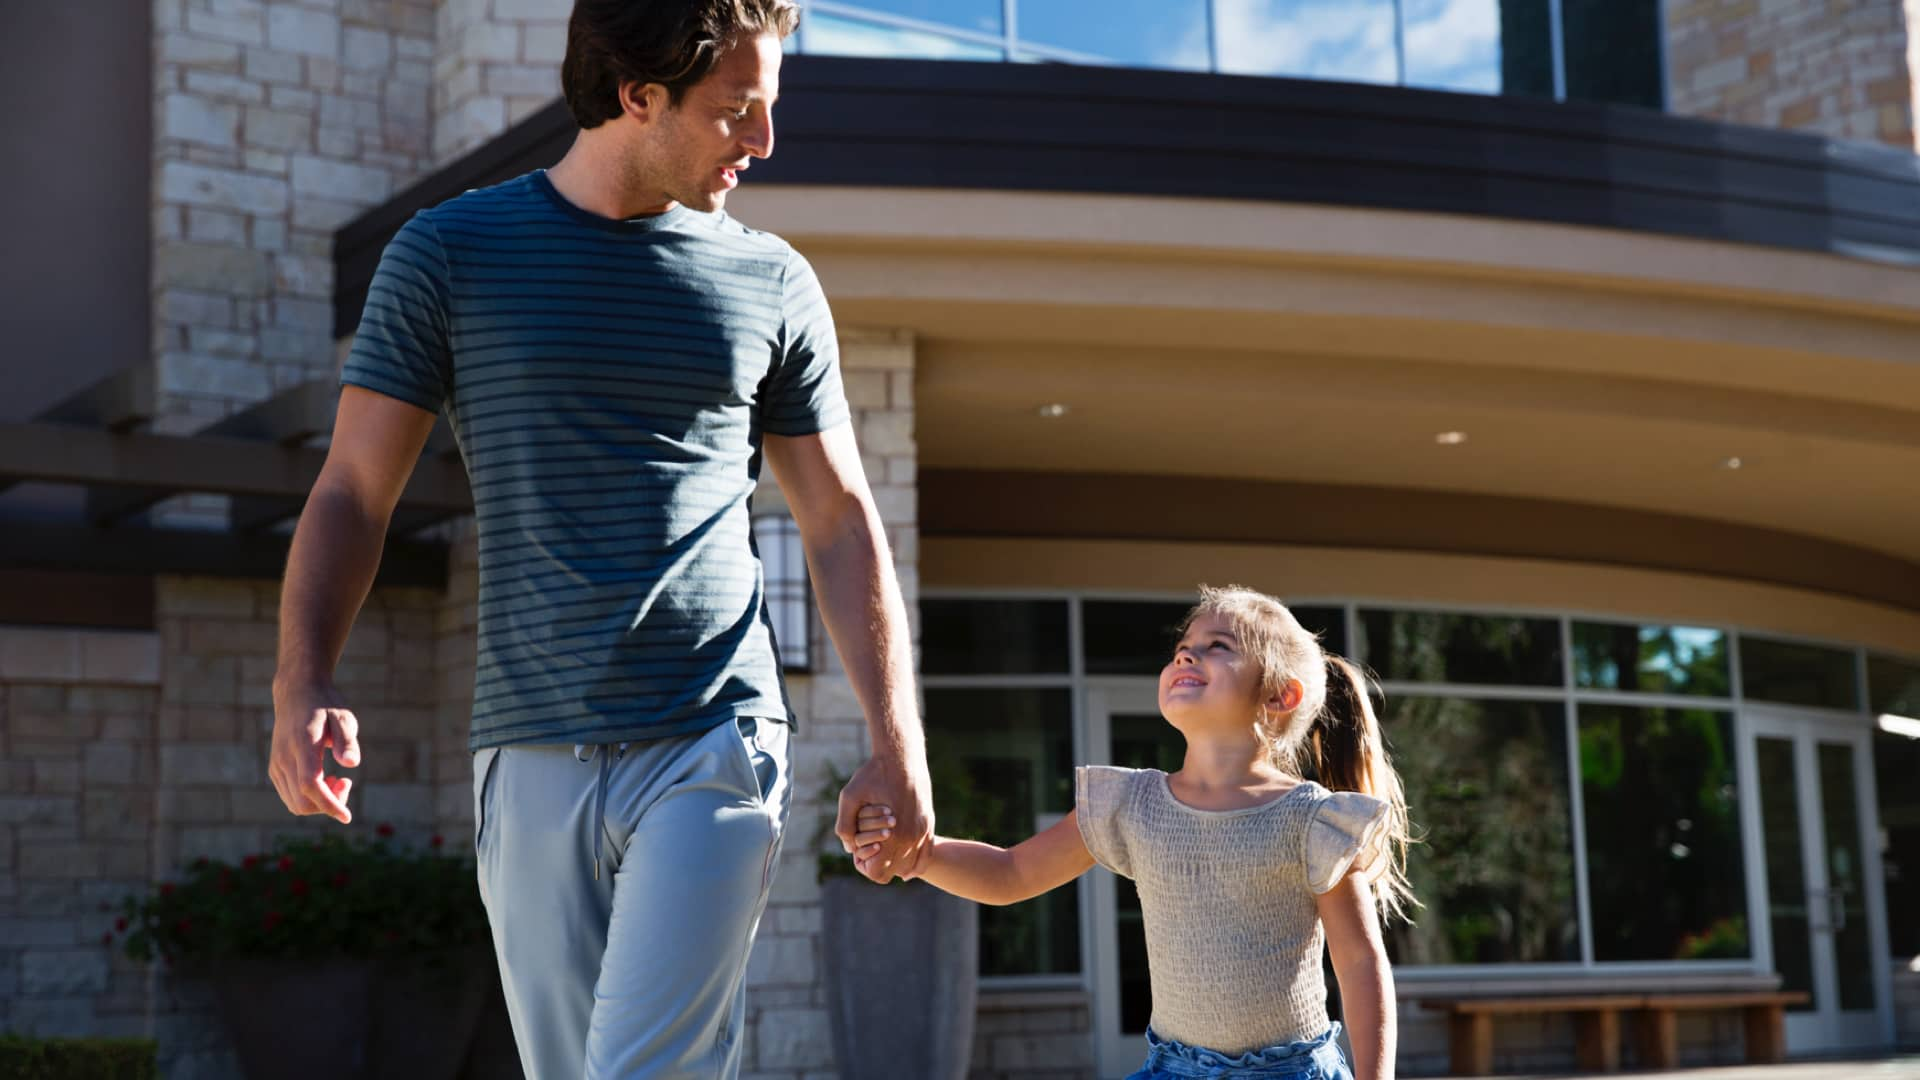 A father and daughter walk together in front of a Life Time Athletic Resort and Spa